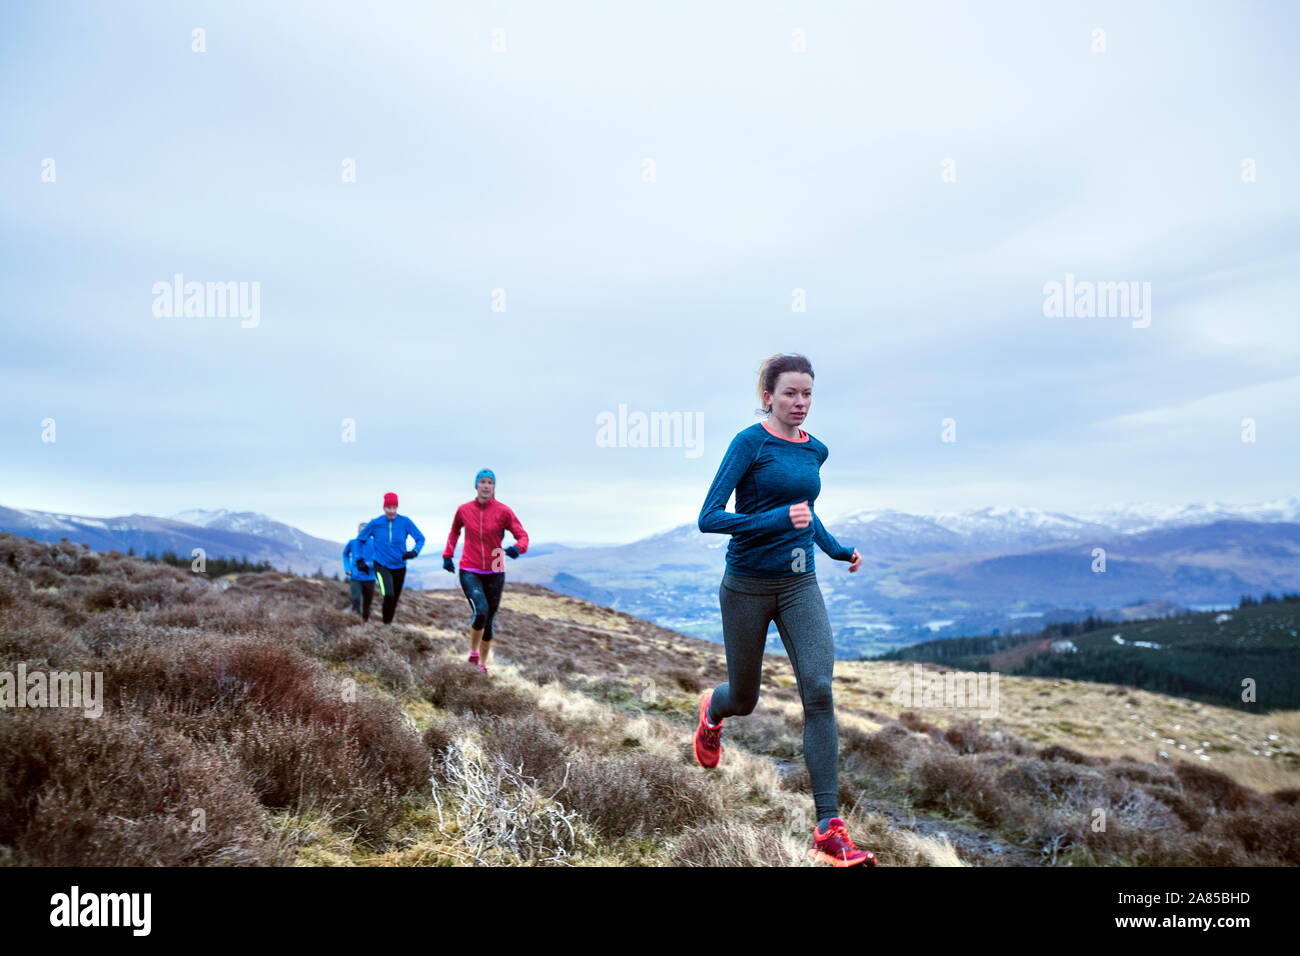 Friends jogging on trail in remote mountains Stock Photo